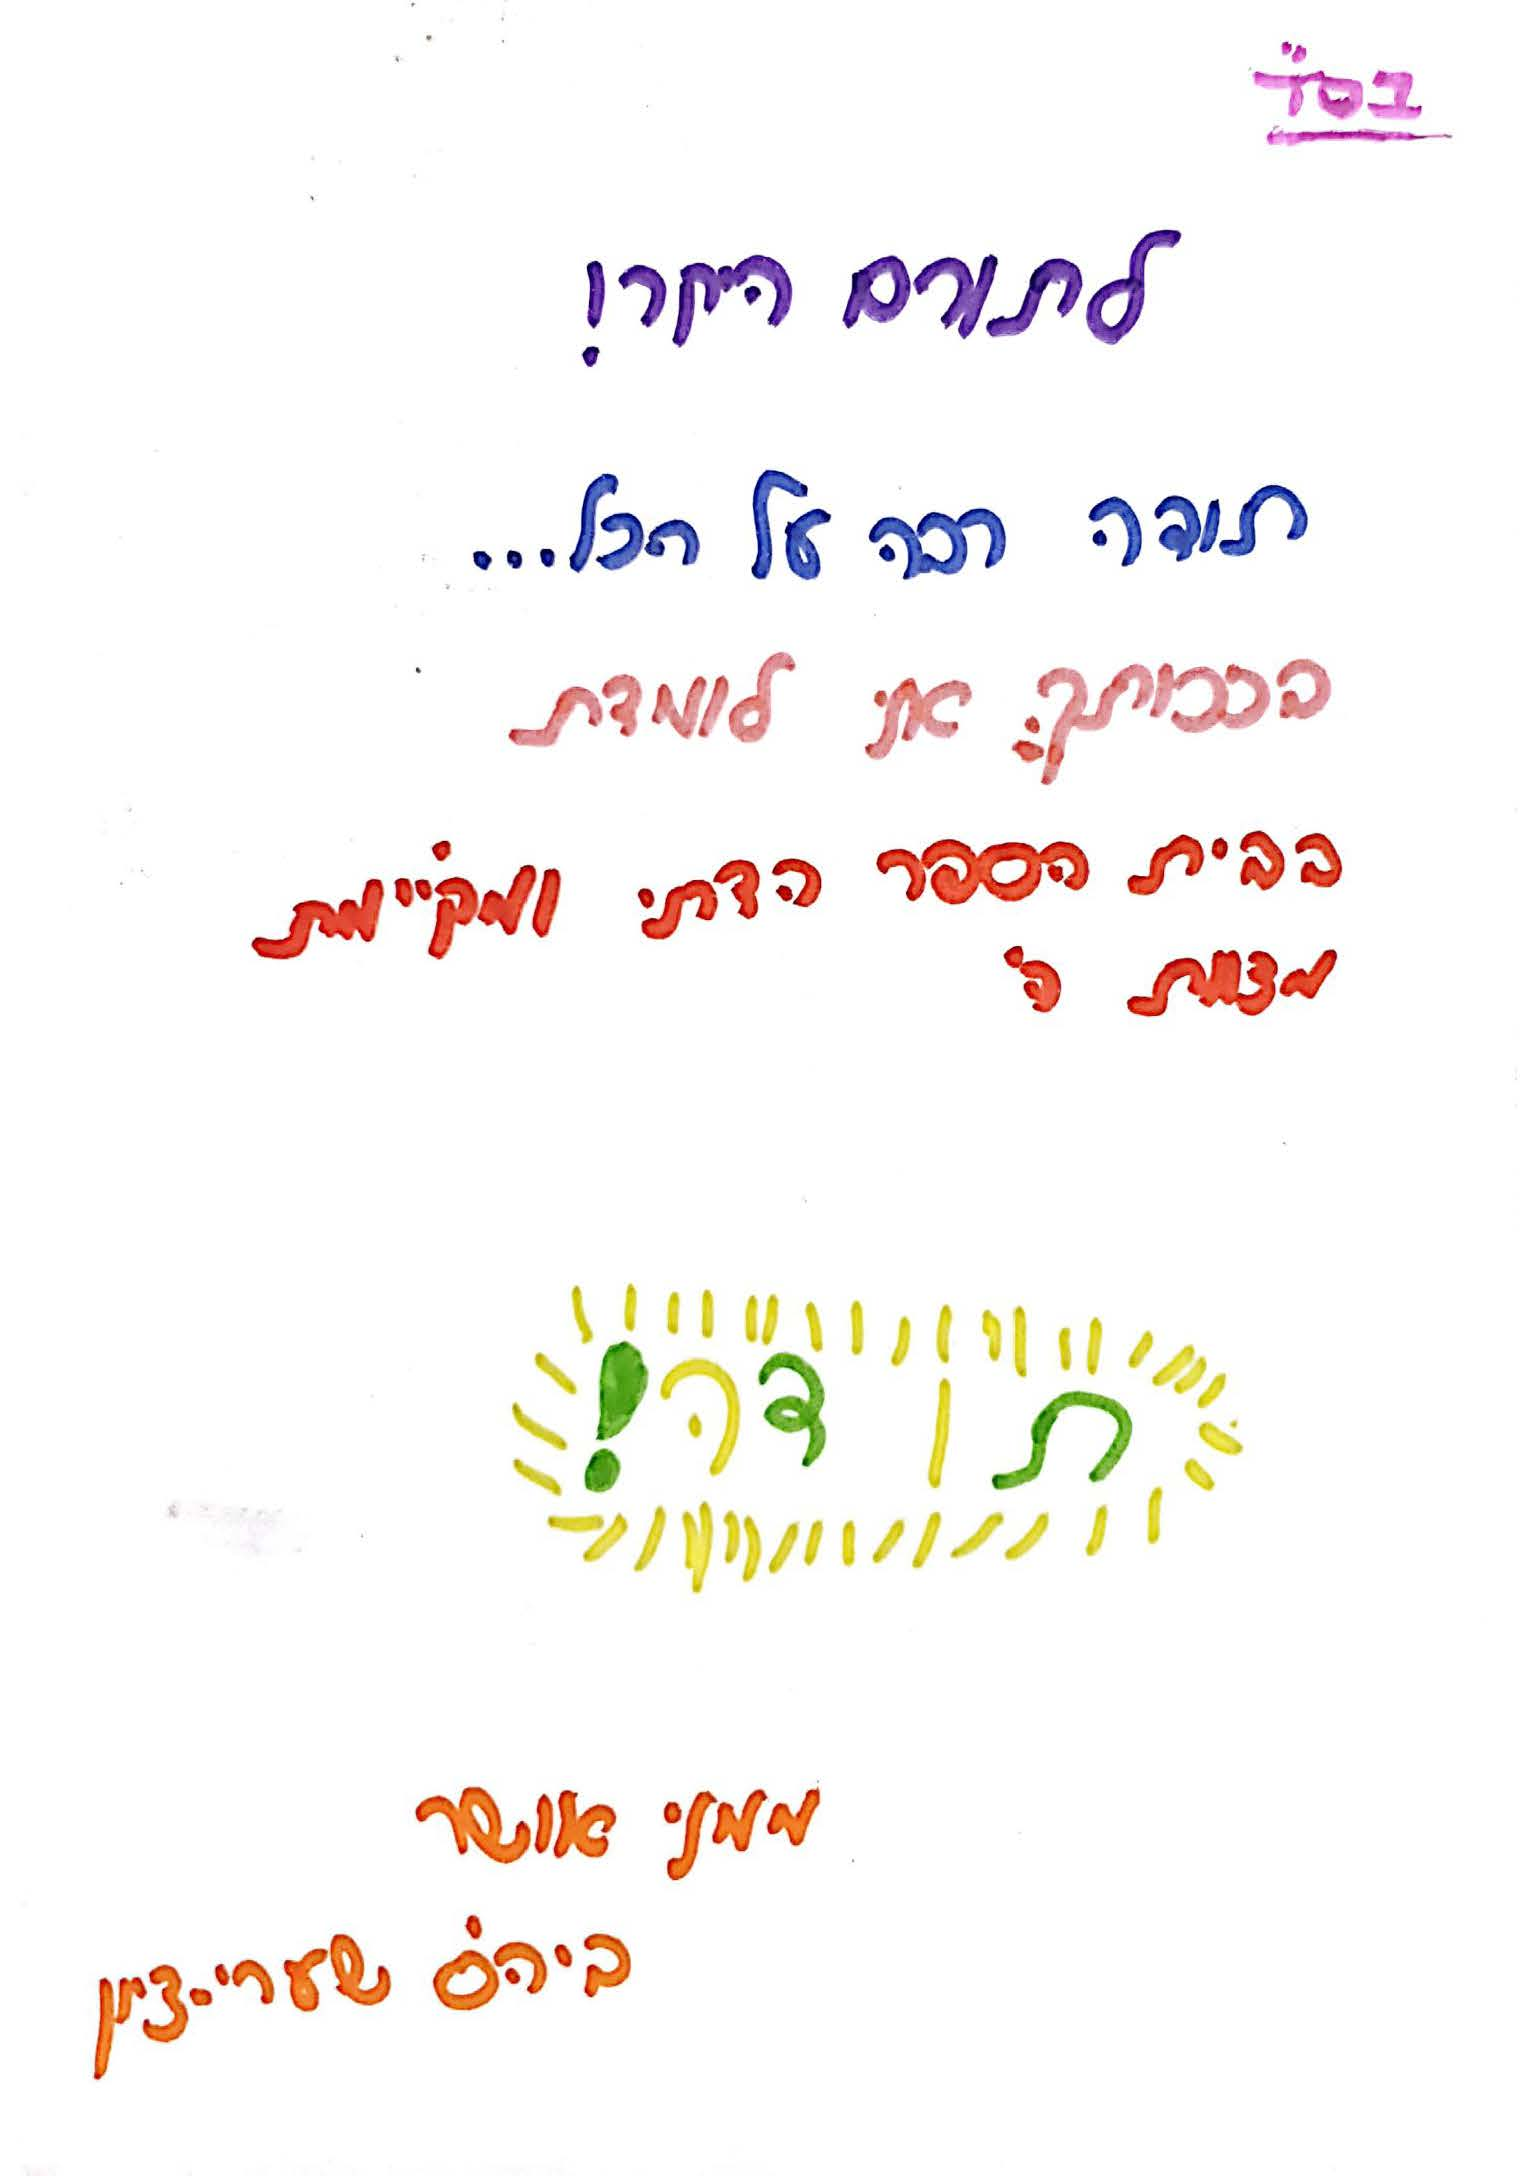 CamScanner 07-28-2021 09.08_Page_10